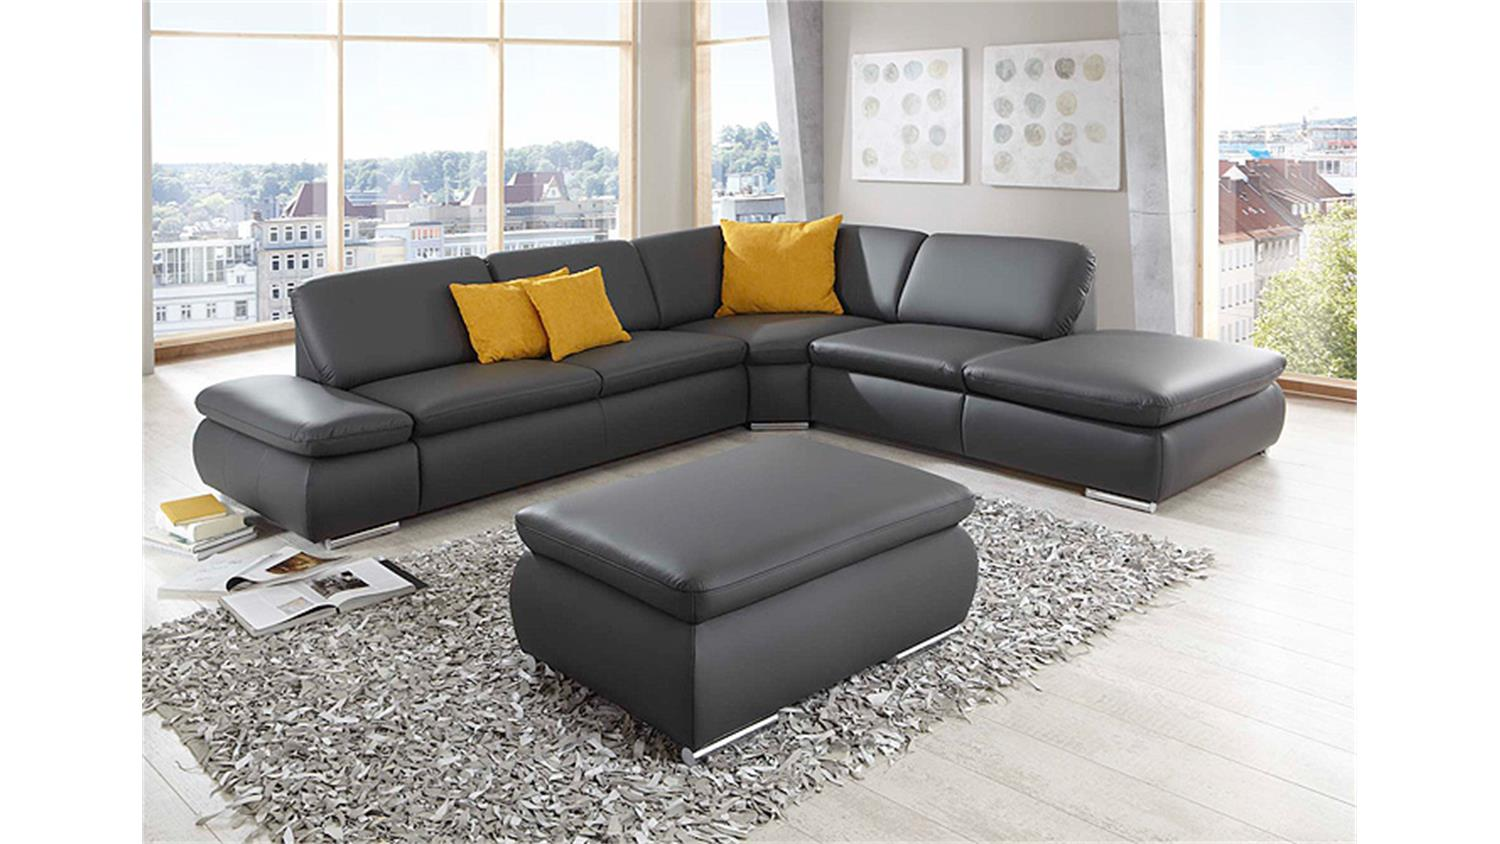 ecksofa vigo wohnlandschaft sofa in dunkelgrau 296 cm. Black Bedroom Furniture Sets. Home Design Ideas